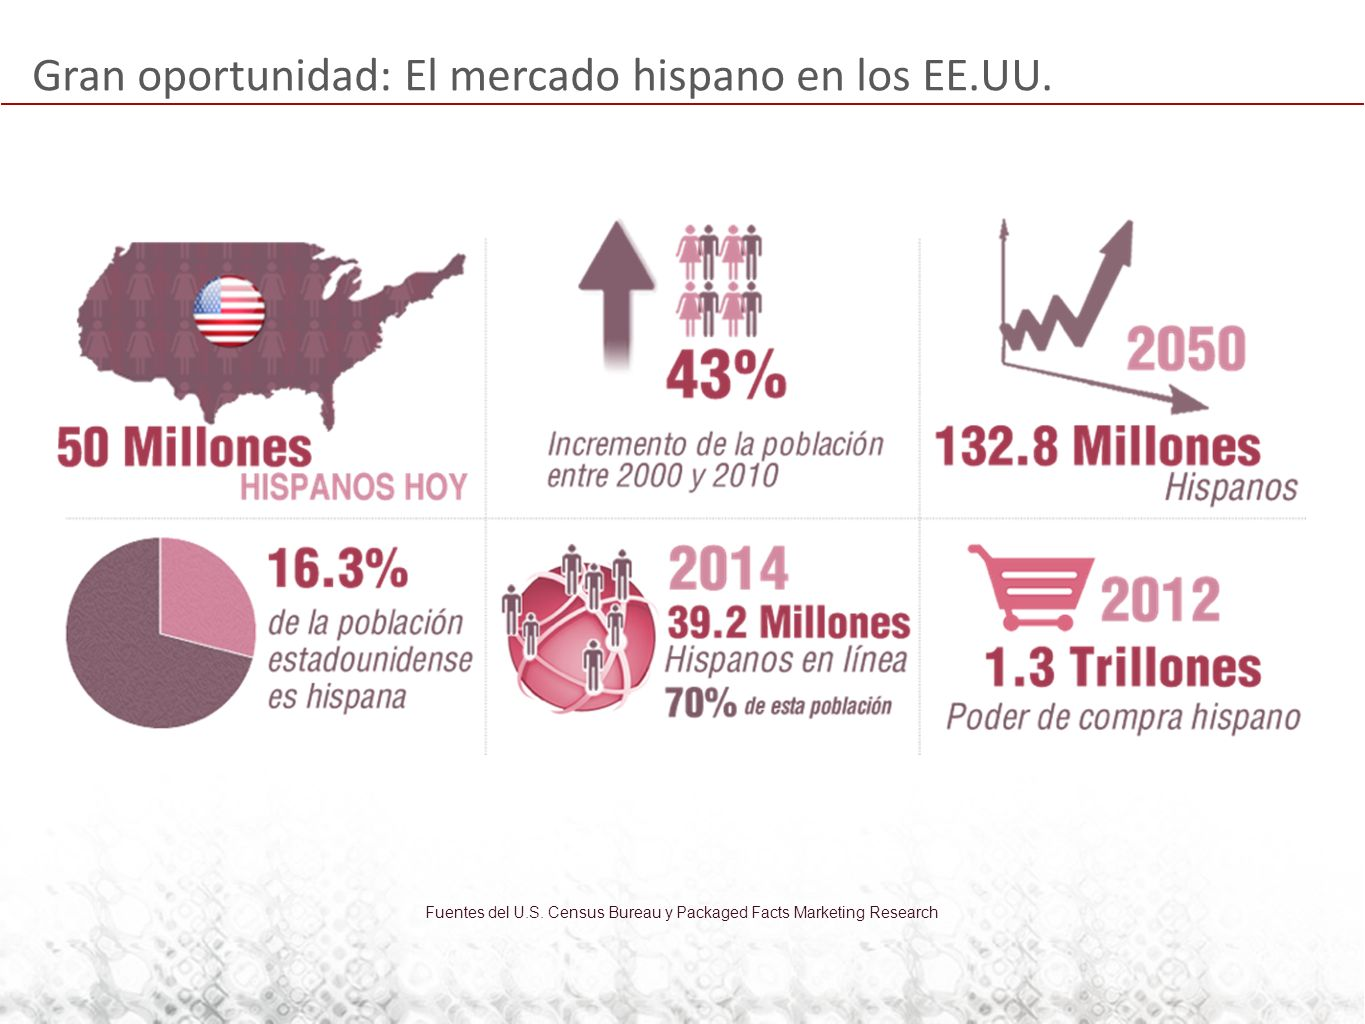 Gran oportunidad: El mercado hispano en los EE.UU. Fuentes del U.S. Census Bureau y Packaged Facts Marketing Research